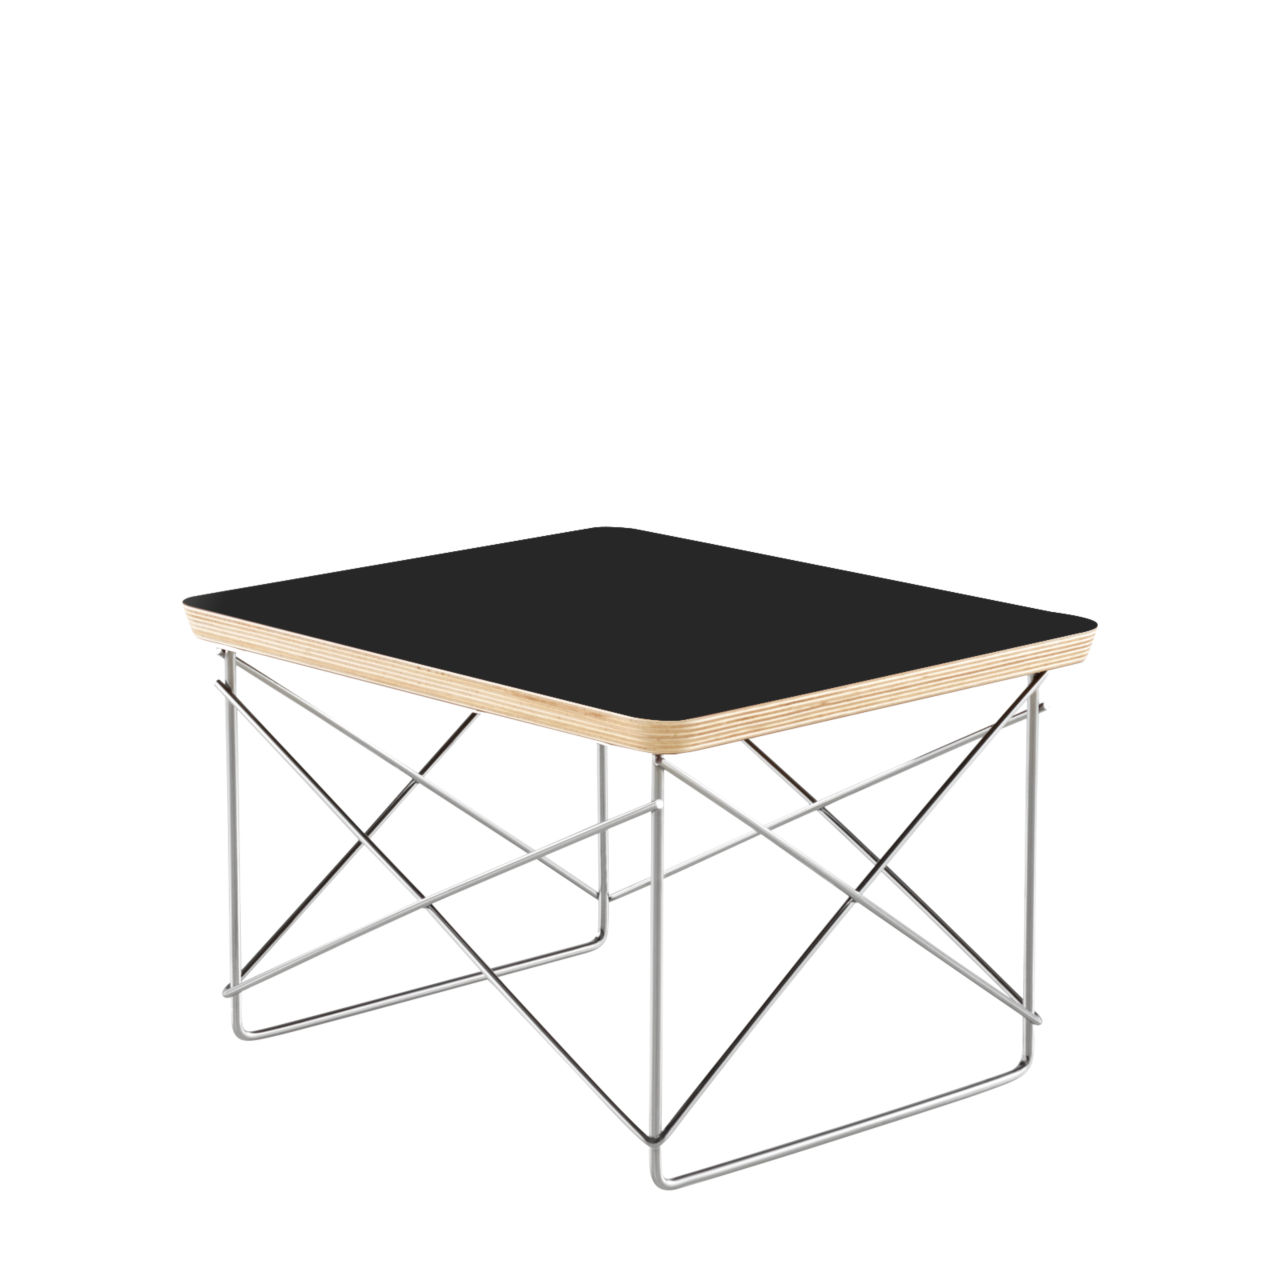 Eames Wire Base Table in Black by Herman Miller